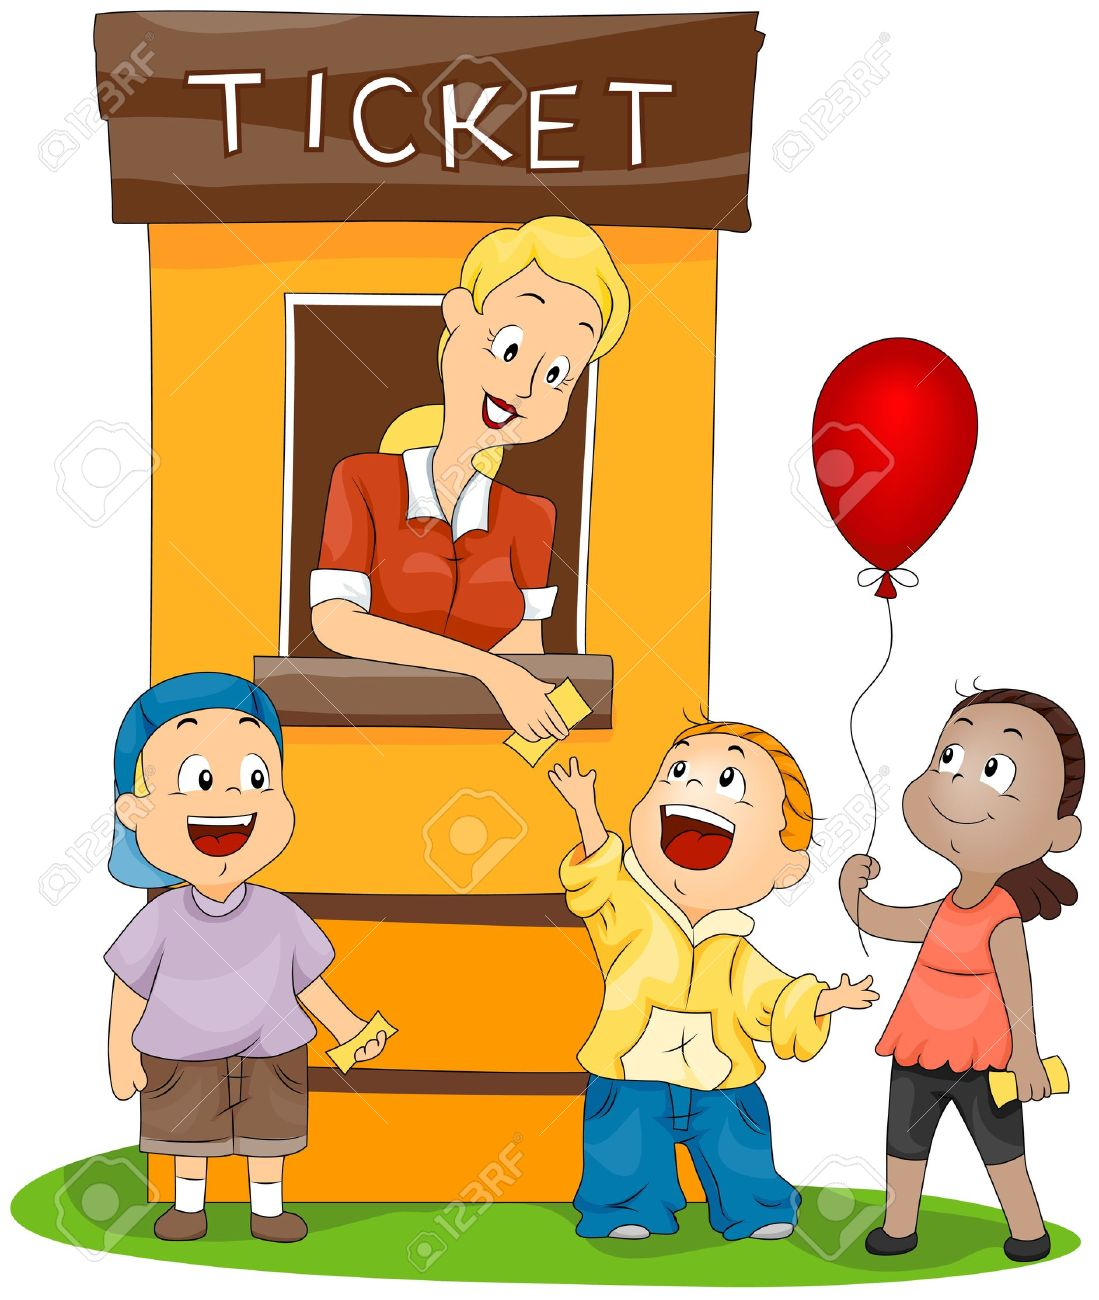 This image is a clipart picture of a women who is selling tickets of a ride to 3 children.